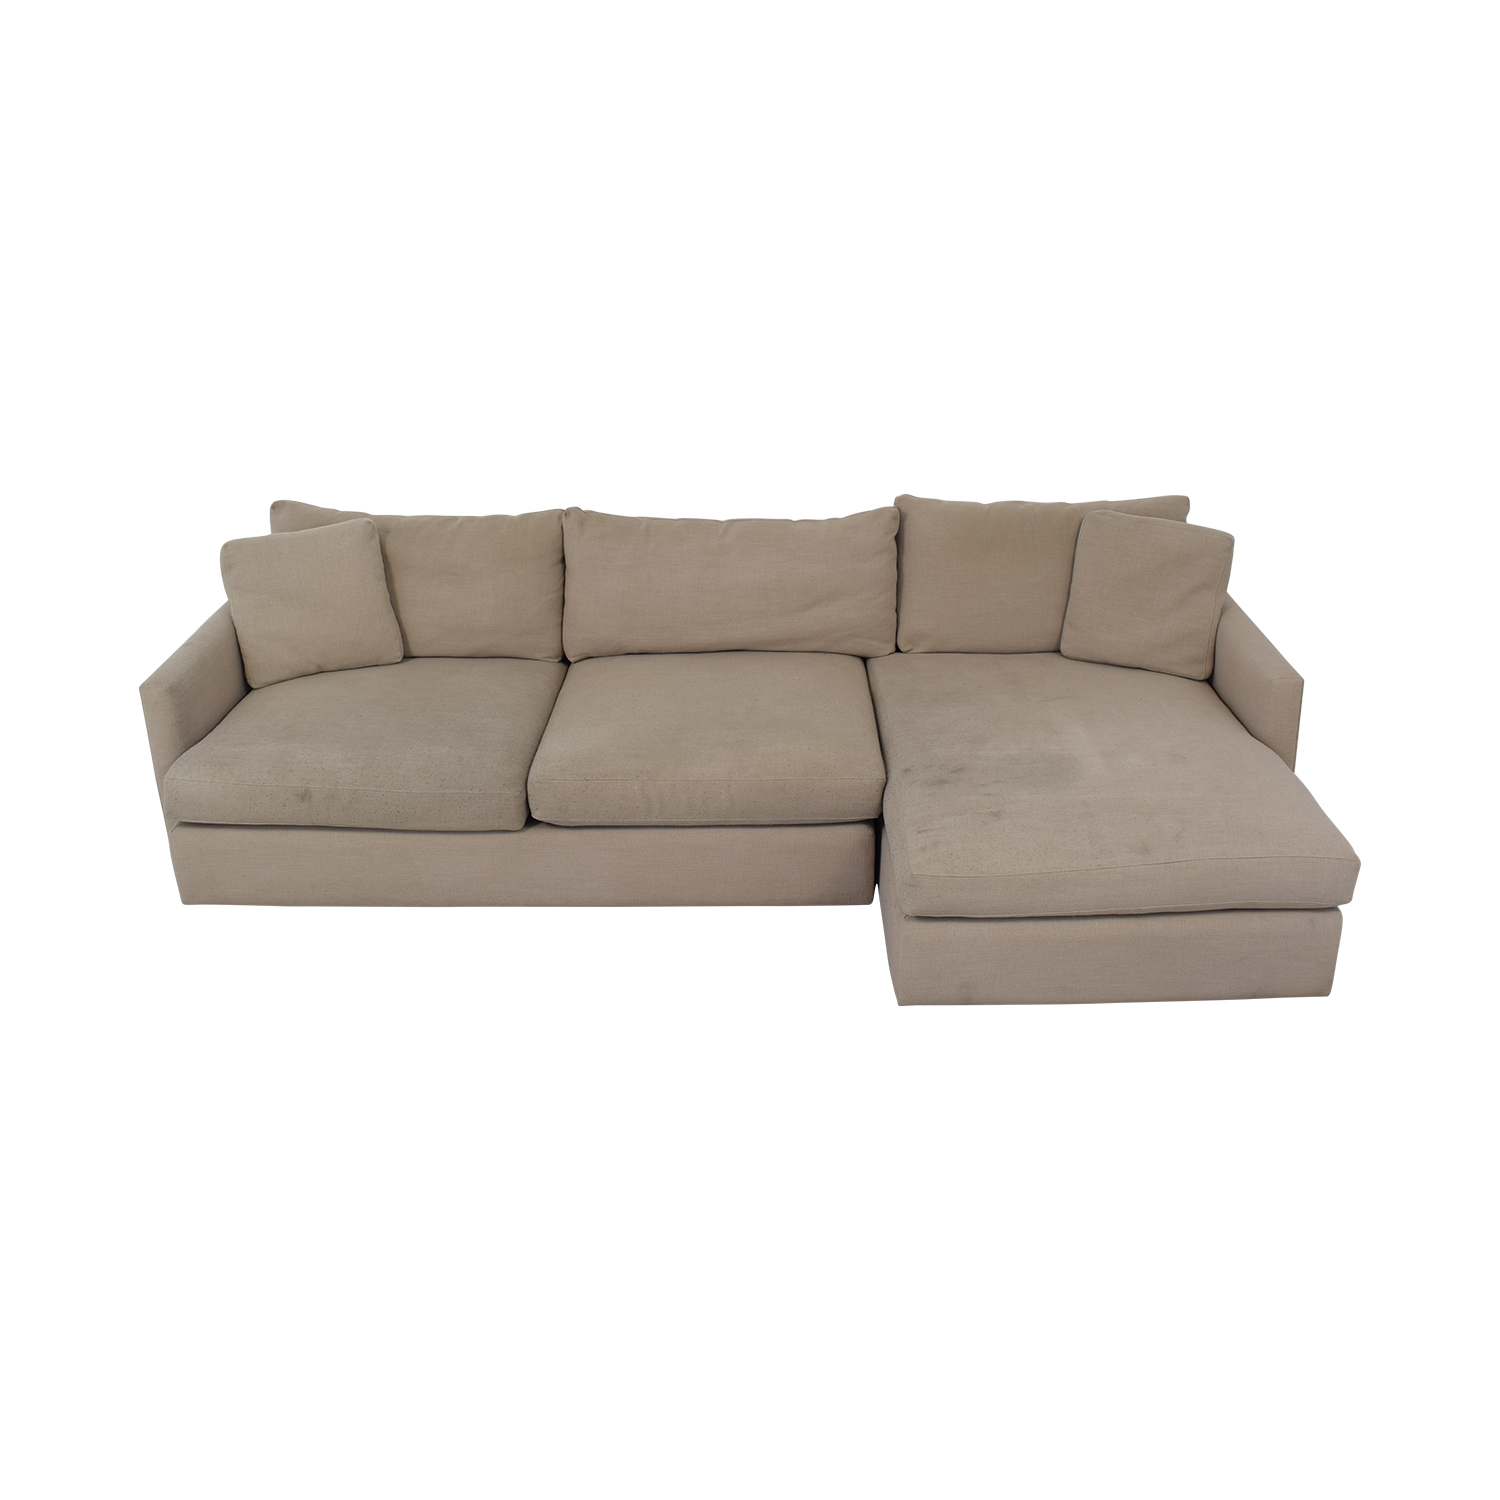 Crate & Barrel Sectional Sofa / Sectionals